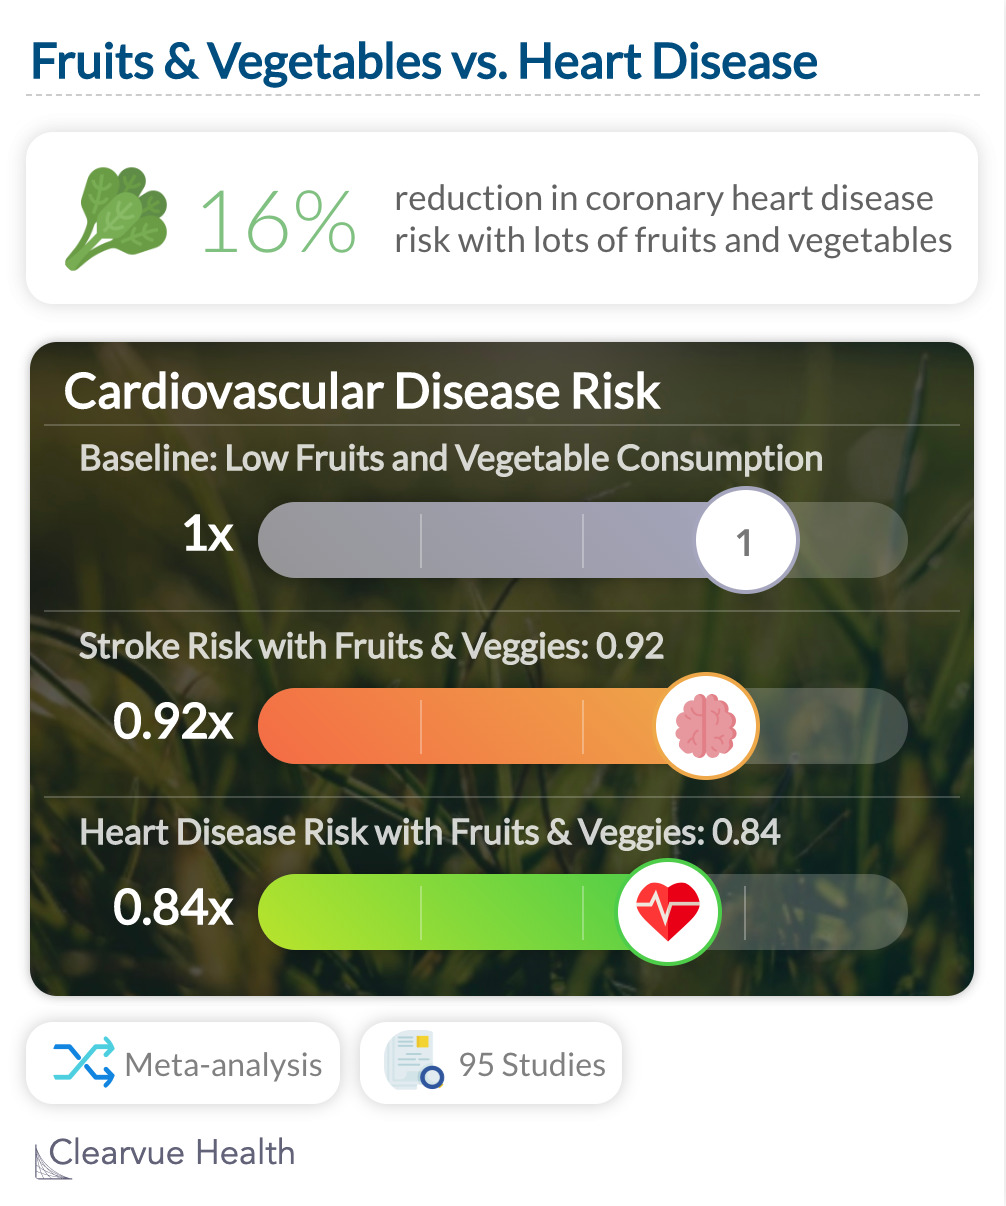 Fruits & Vegetables vs. Heart Disease